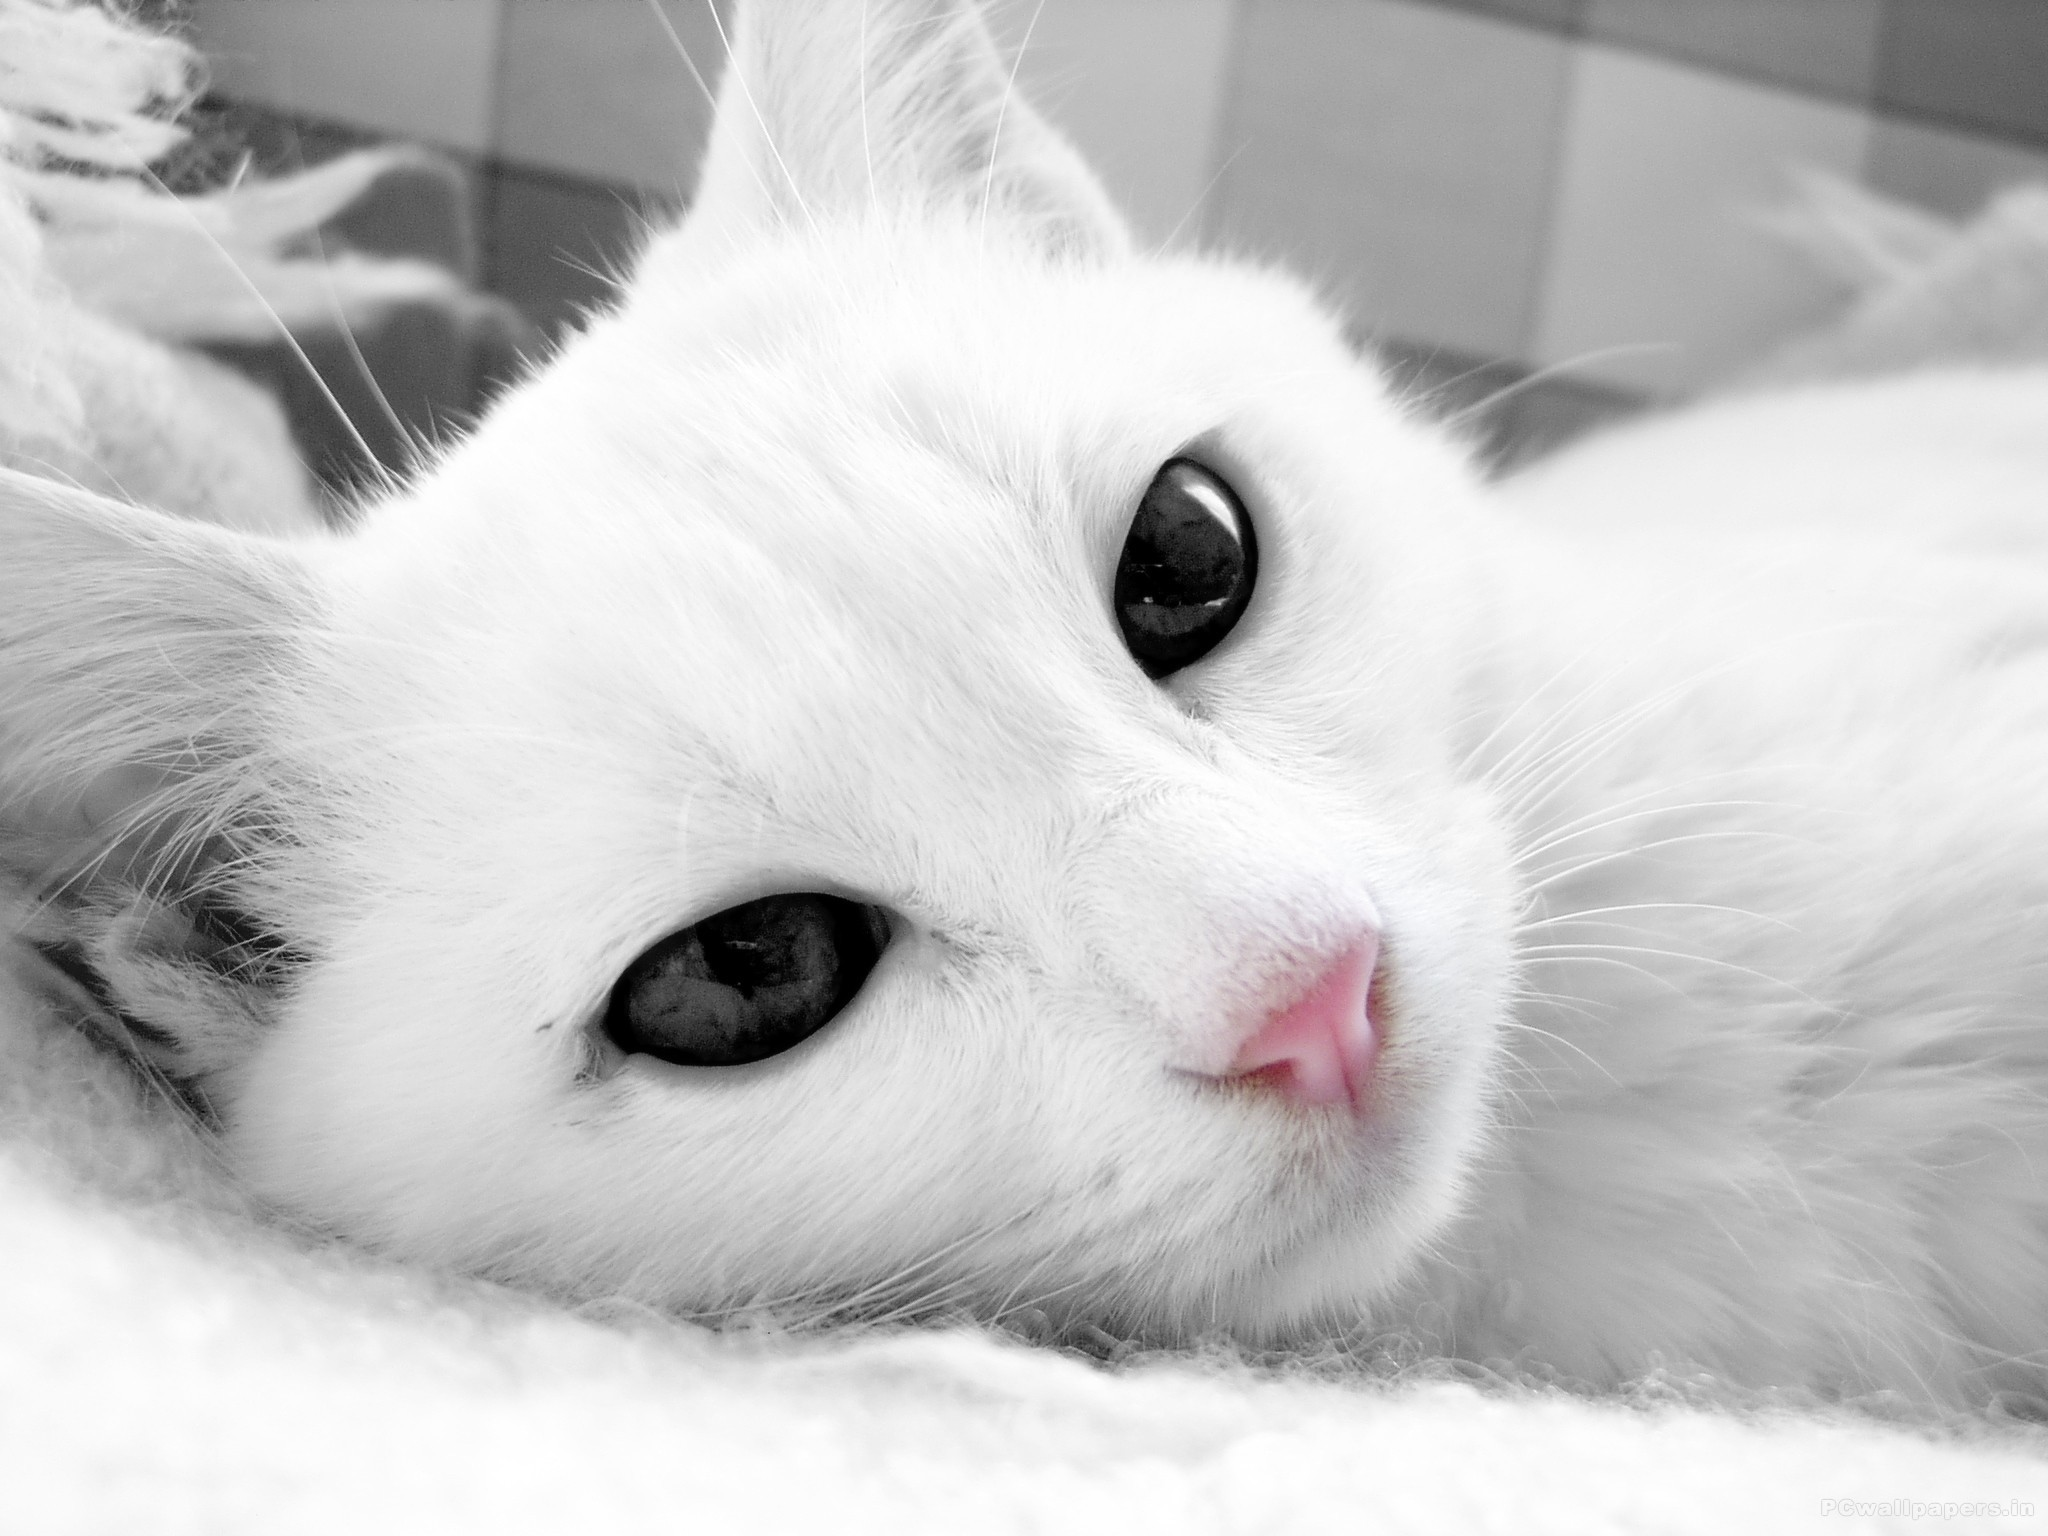 White cat animal laying in bed